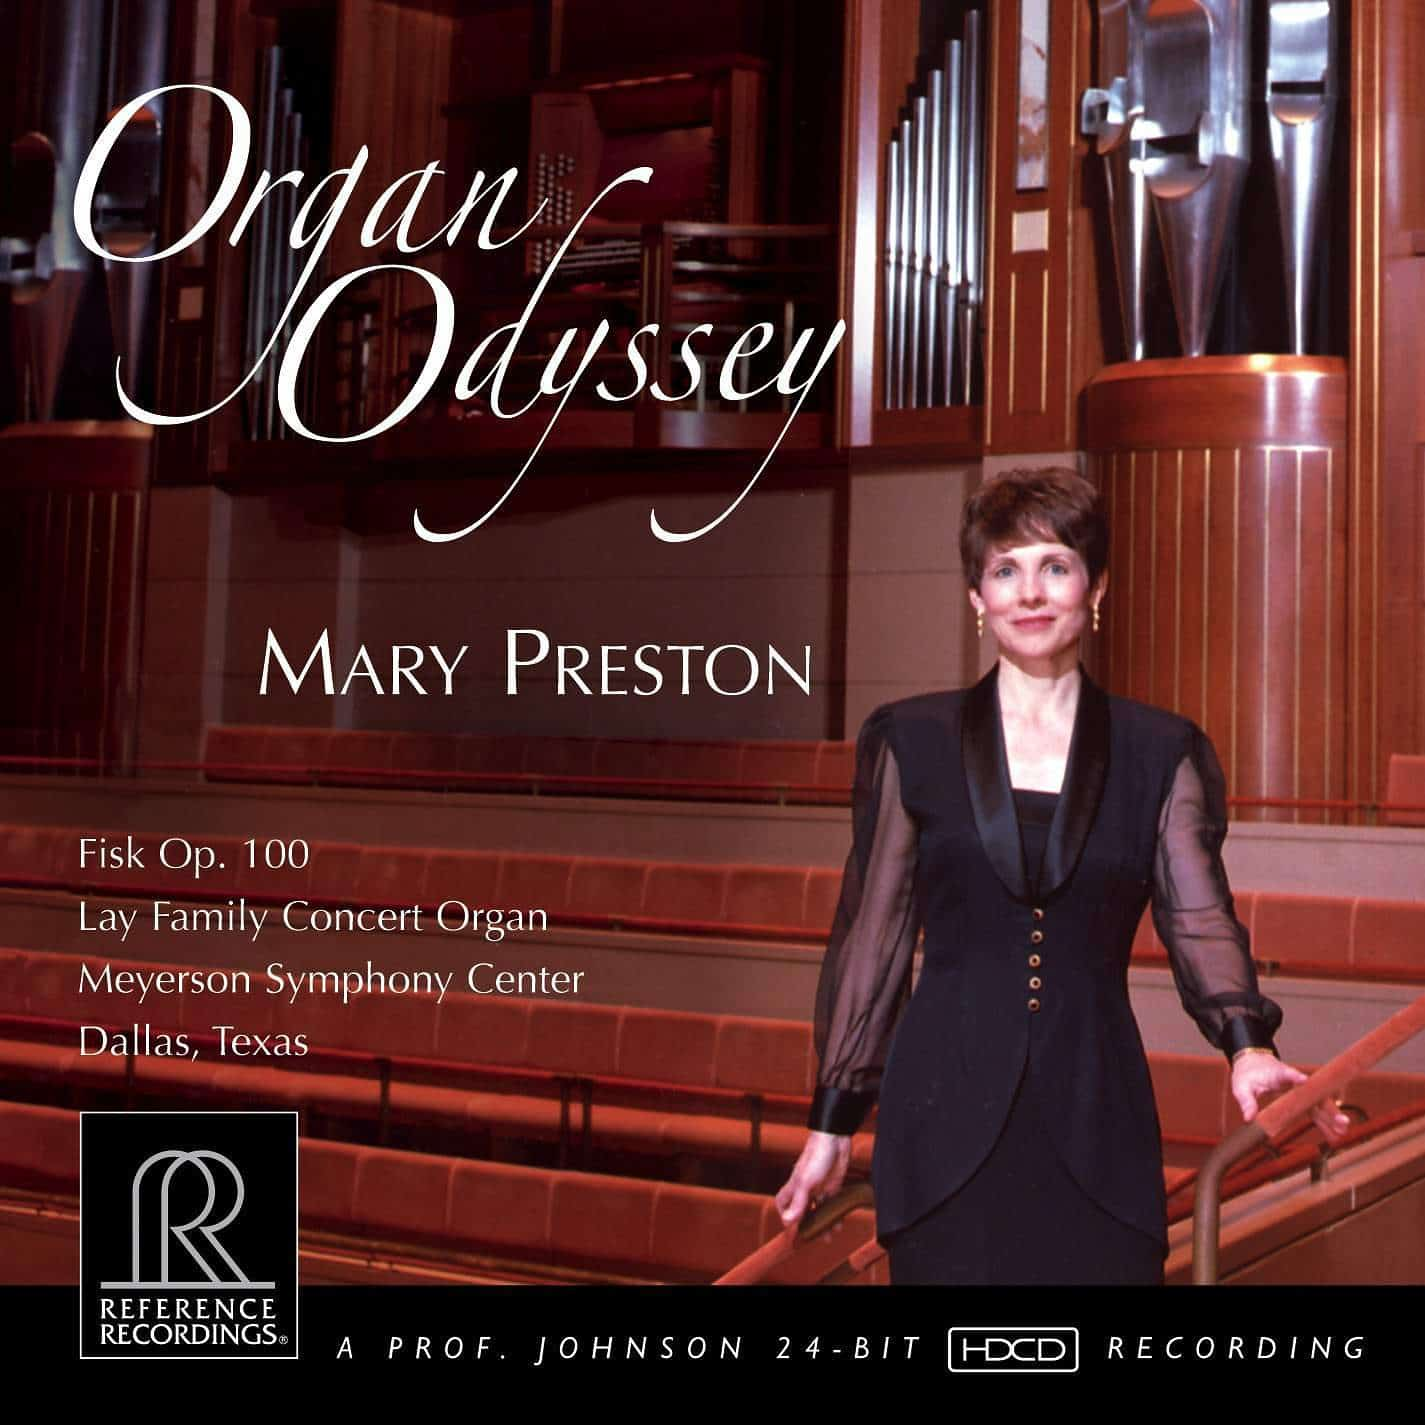 Organ Odyssey/ Mary Preston | Mary Preston